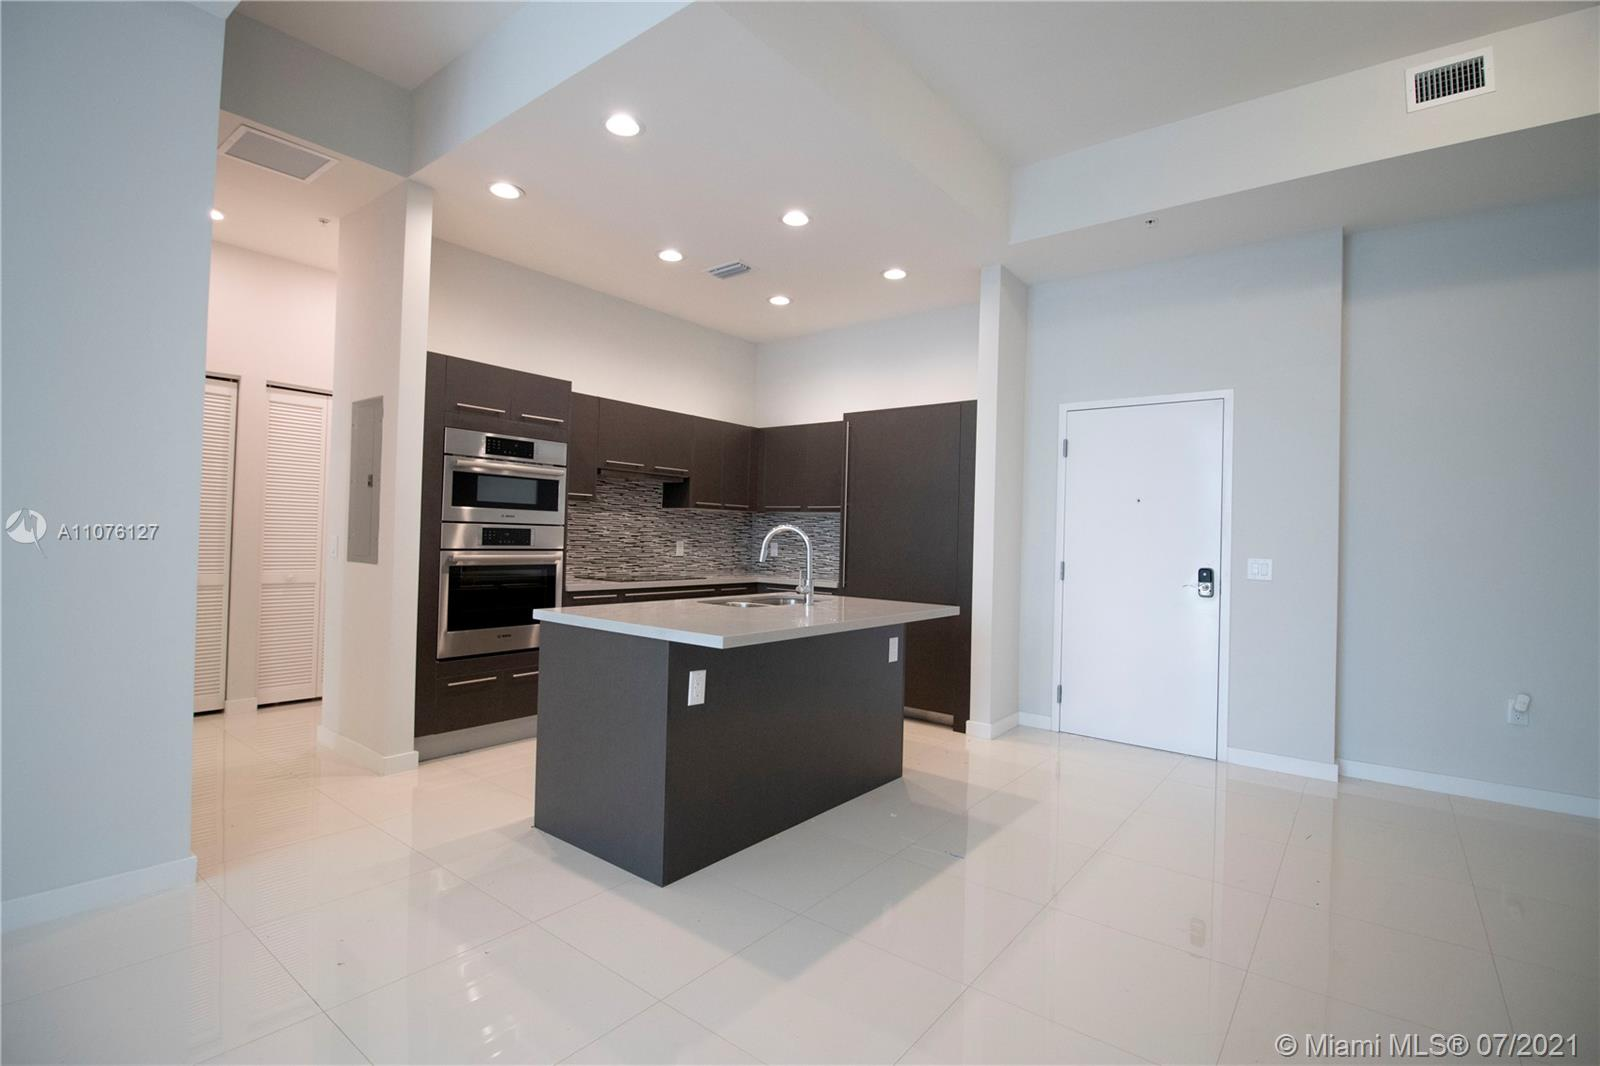 Midtown Doral - Building 3 #807 - 7825 NW 107th Ave #807, Doral, FL 33178